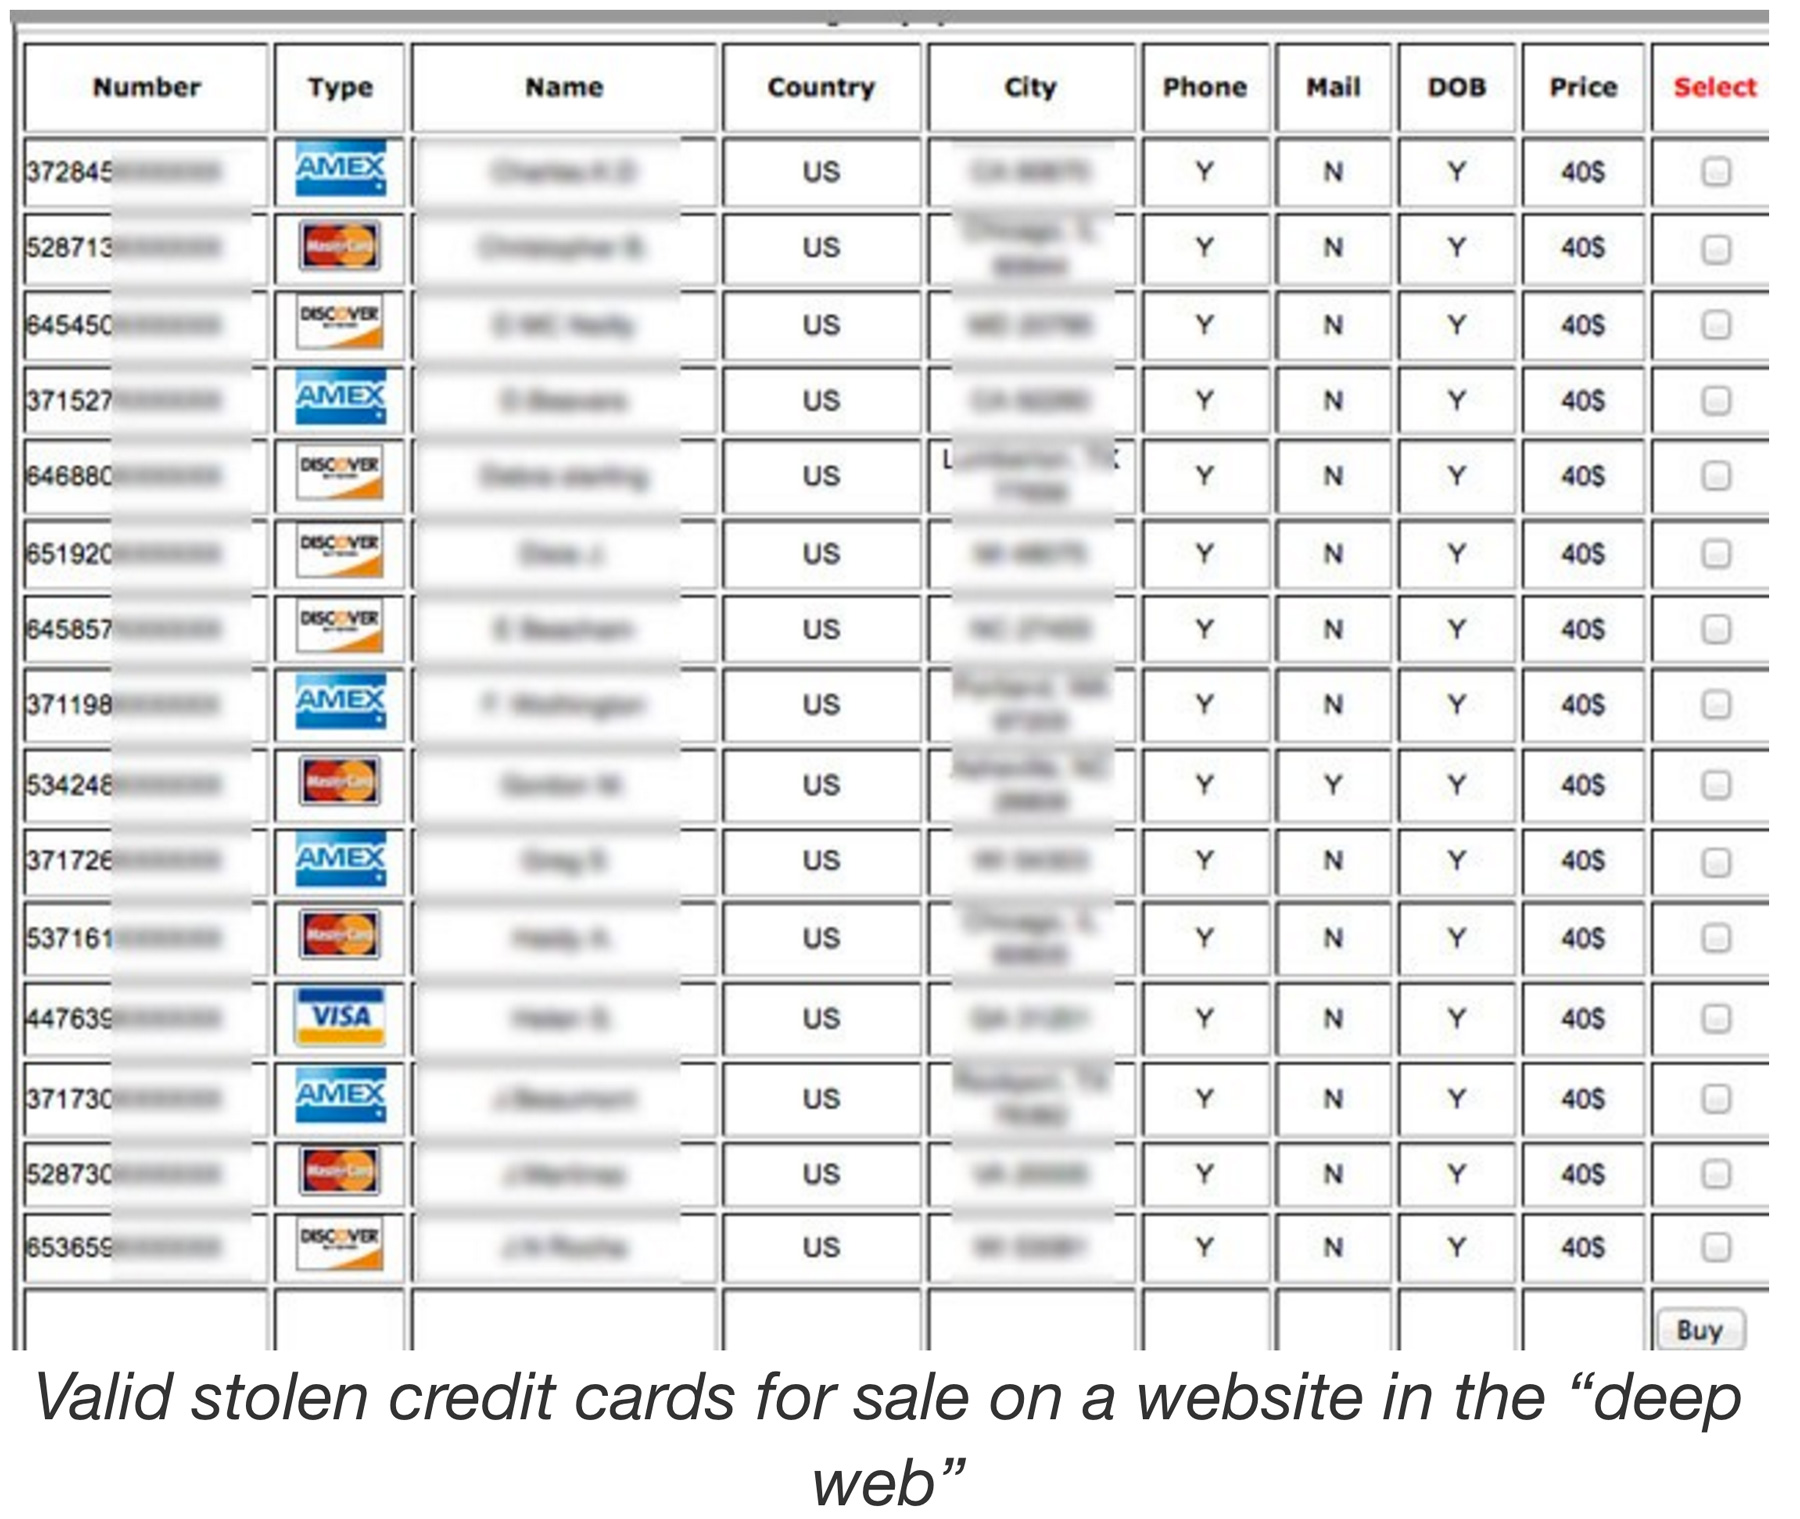 STOLEN-TARGET-CARDS-ON-THE-DARK-WEB